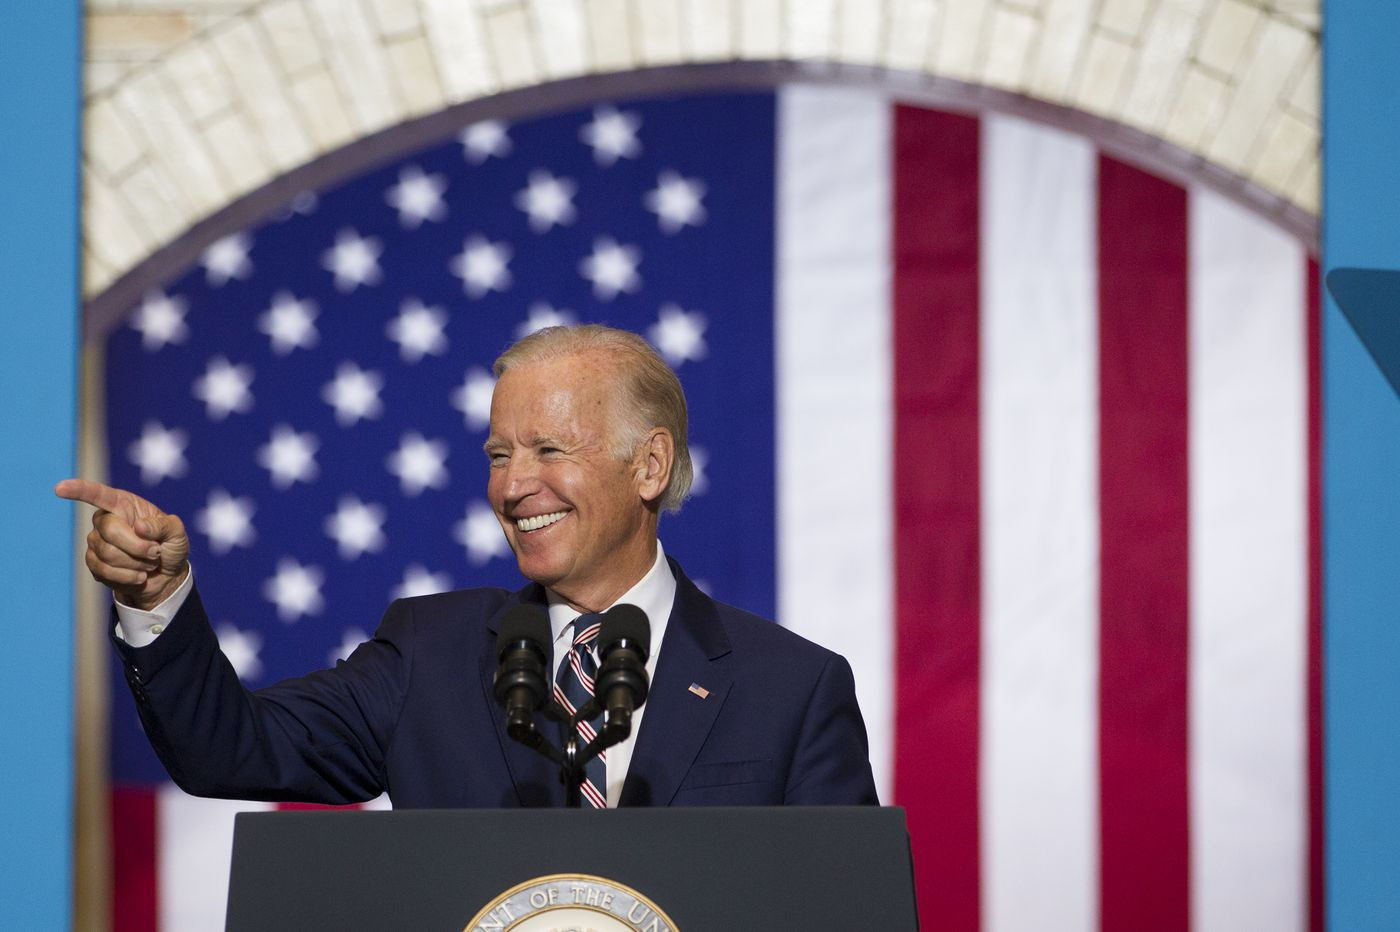 This isn't Joe Biden's first run at president. Here's how he launched his past campaigns.